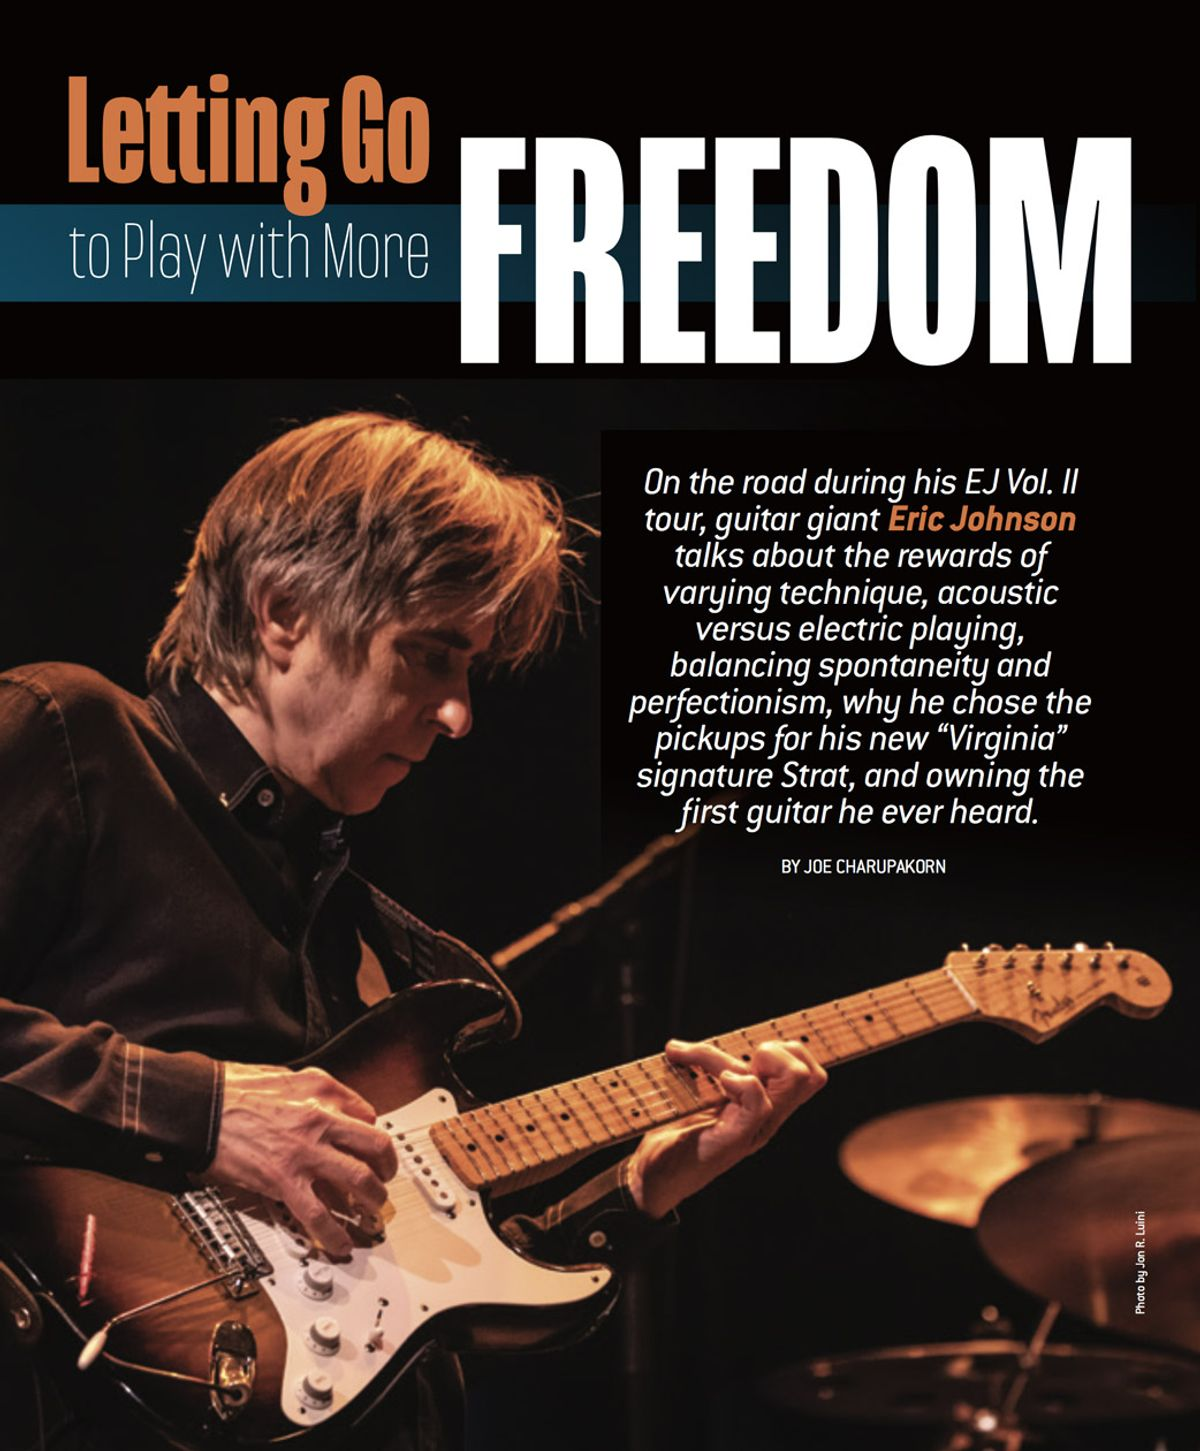 Eric Johnson on Breaking Patterns to Play with More Freedom